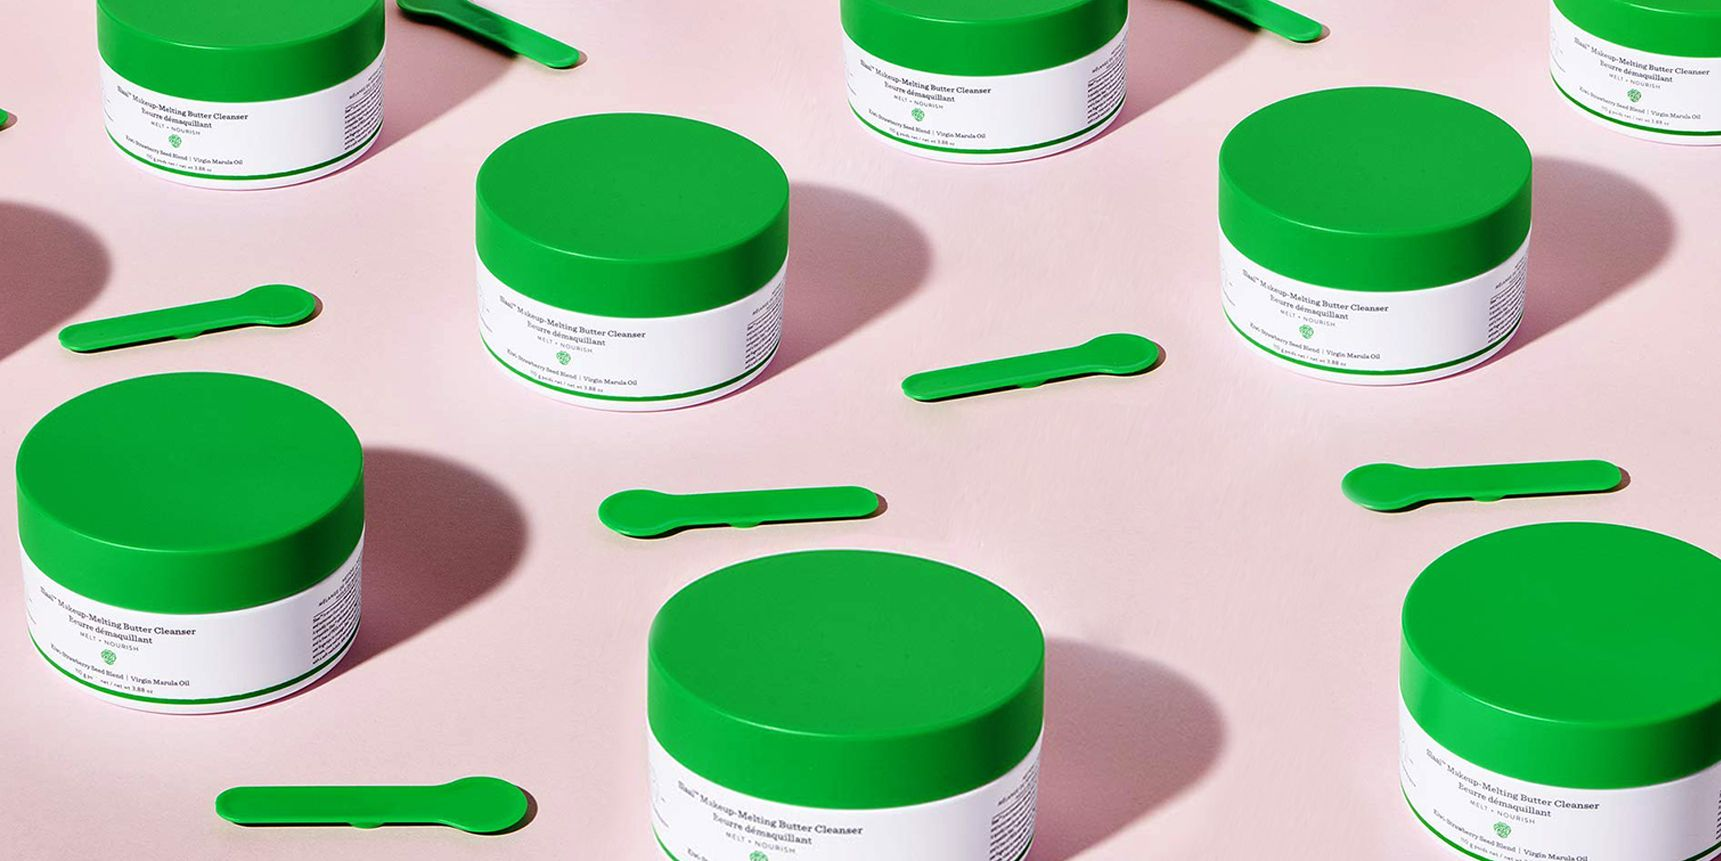 Cleansing Balms Are Our New Favorite Makeup Remover